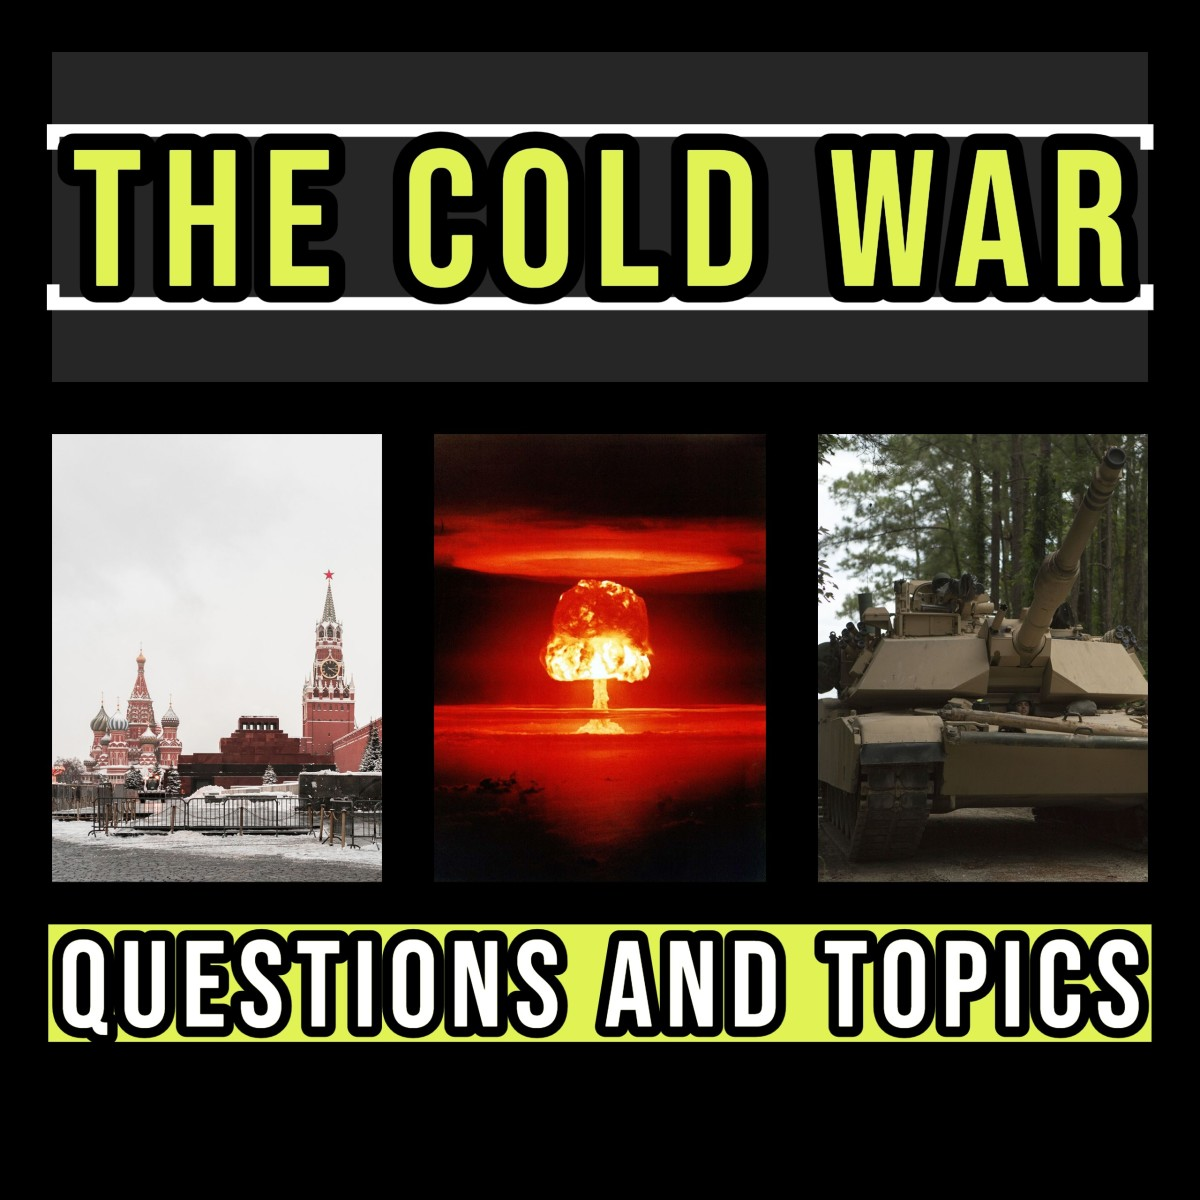 Research paper ideas for the Cold War era.